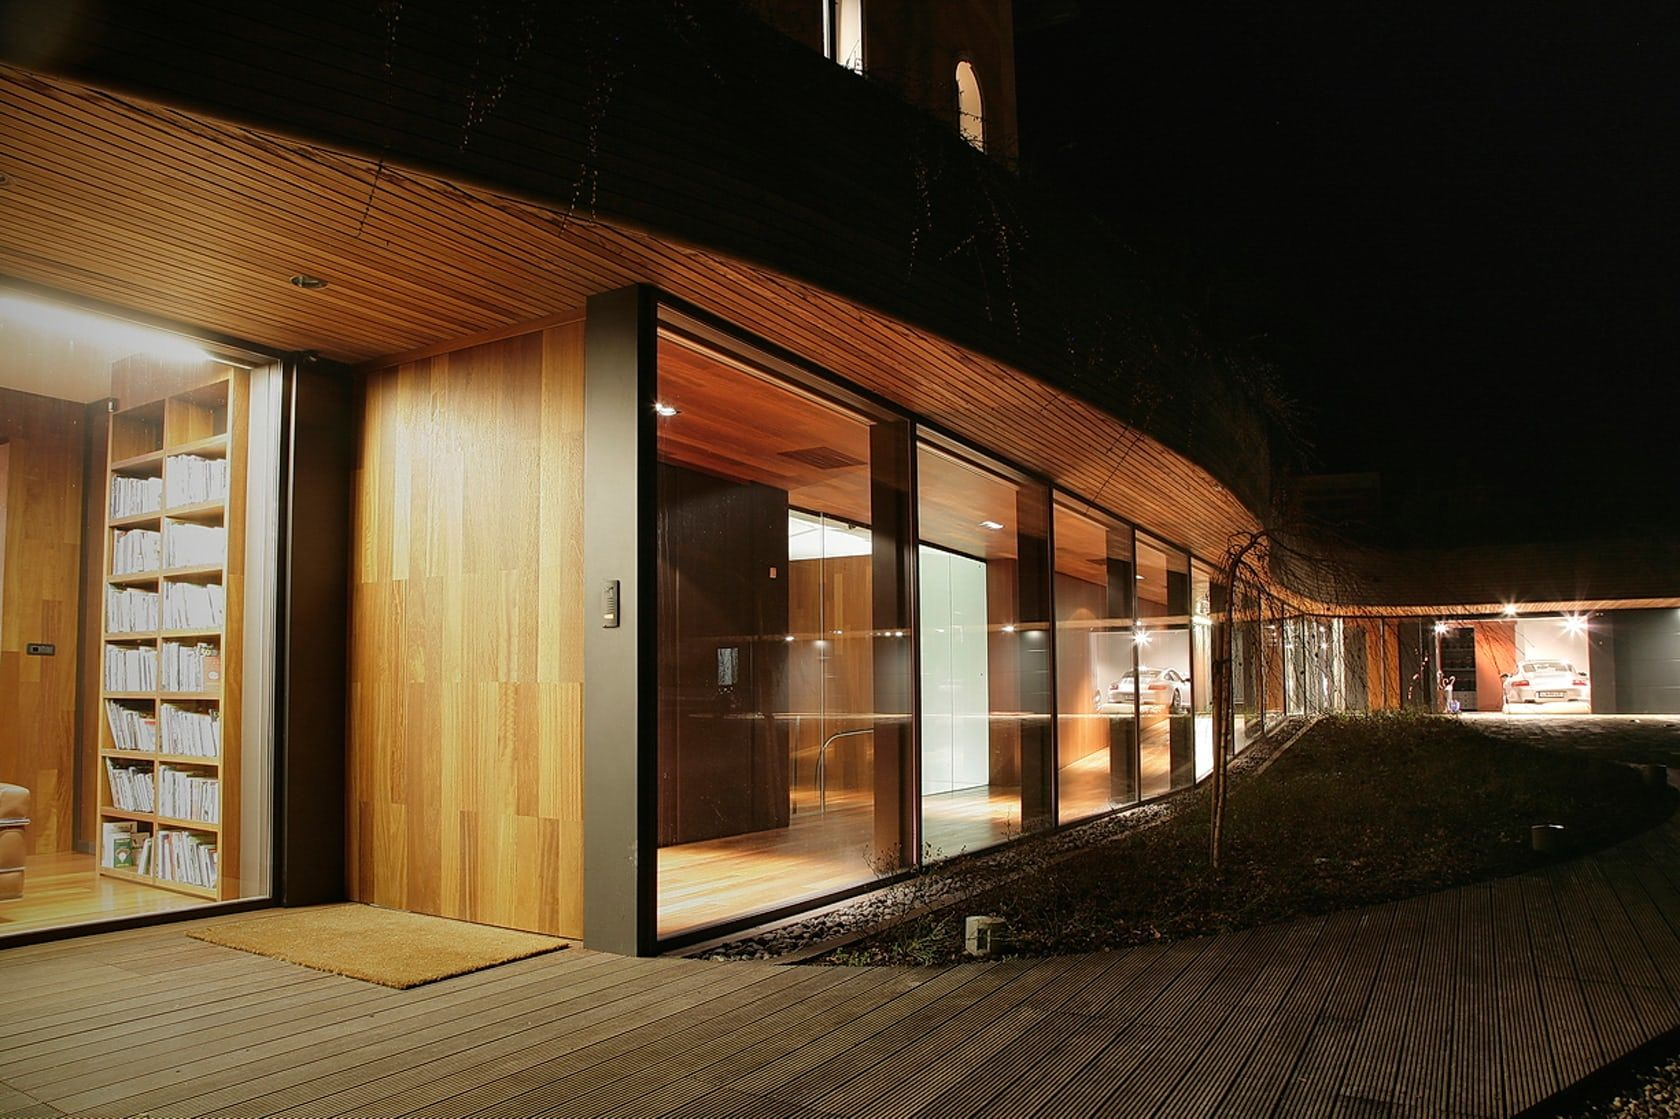 Villa under extension, Bled 2001-2003 The project involves an extension of a 19th-century villa located in a beautiful Alpine resort next to Lake Bled. Both ...